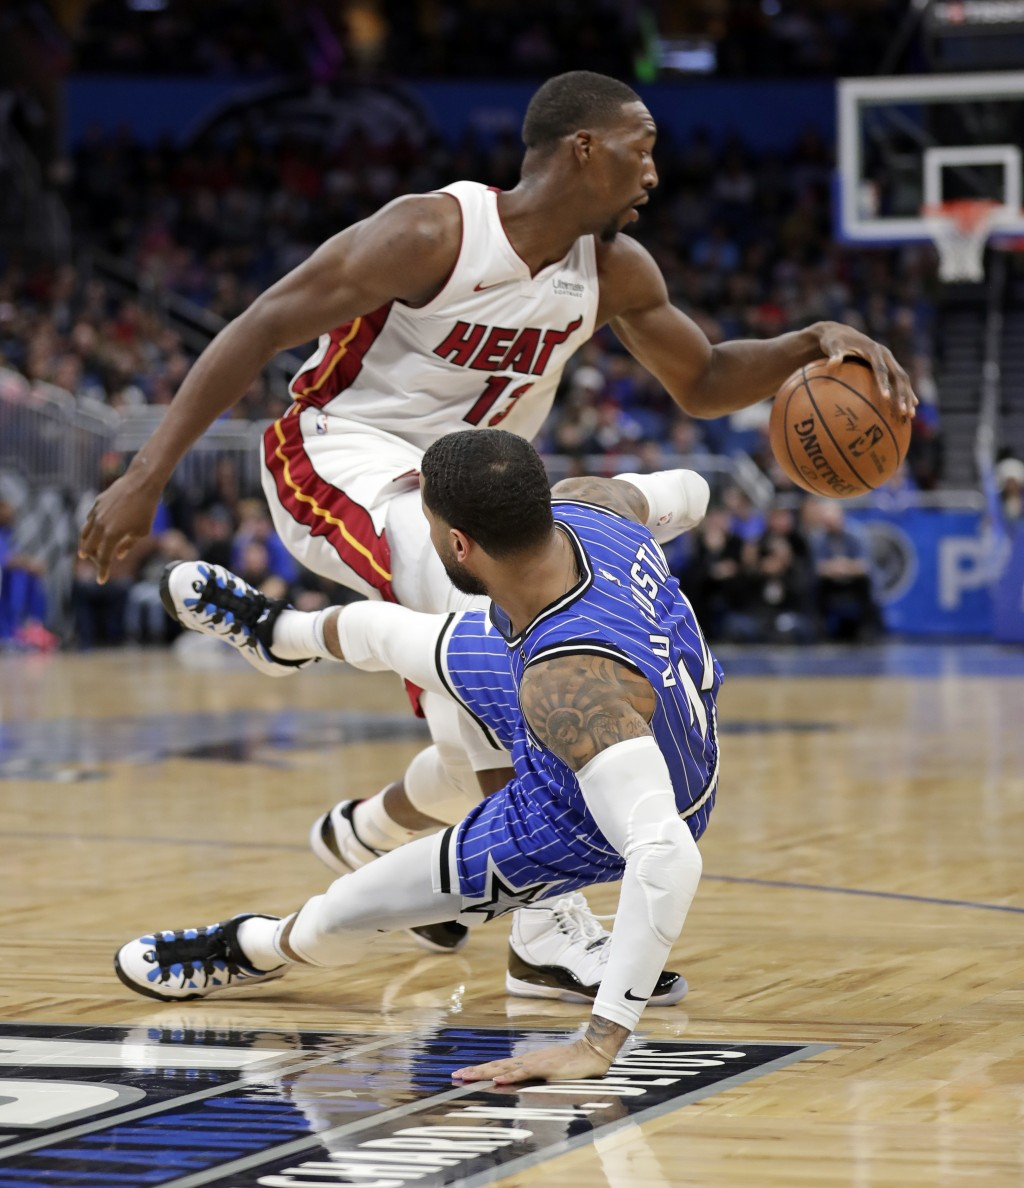 Orlando Magic's D.J. Augustin, right, tumbles backward as he collides with Miami Heat's Bam Adebayo during the first half of an NBA basketball game, S